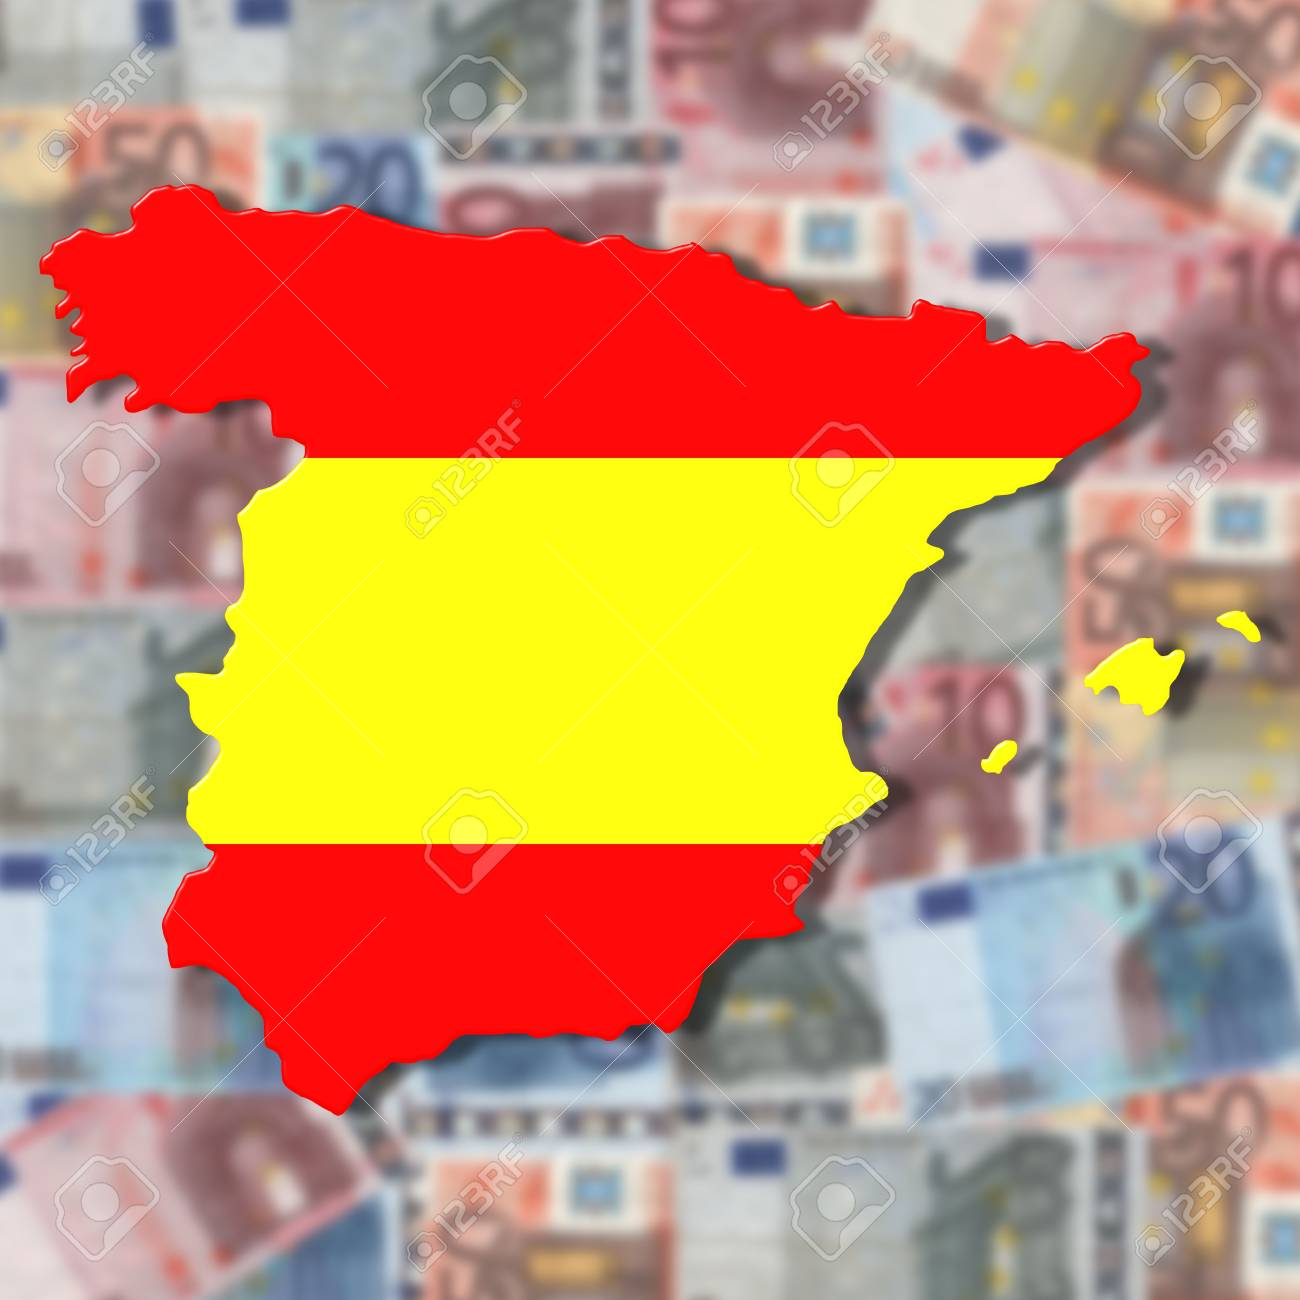 Spain Map Flag.Spain Map Flag On Blurred Euro Currency Illustration